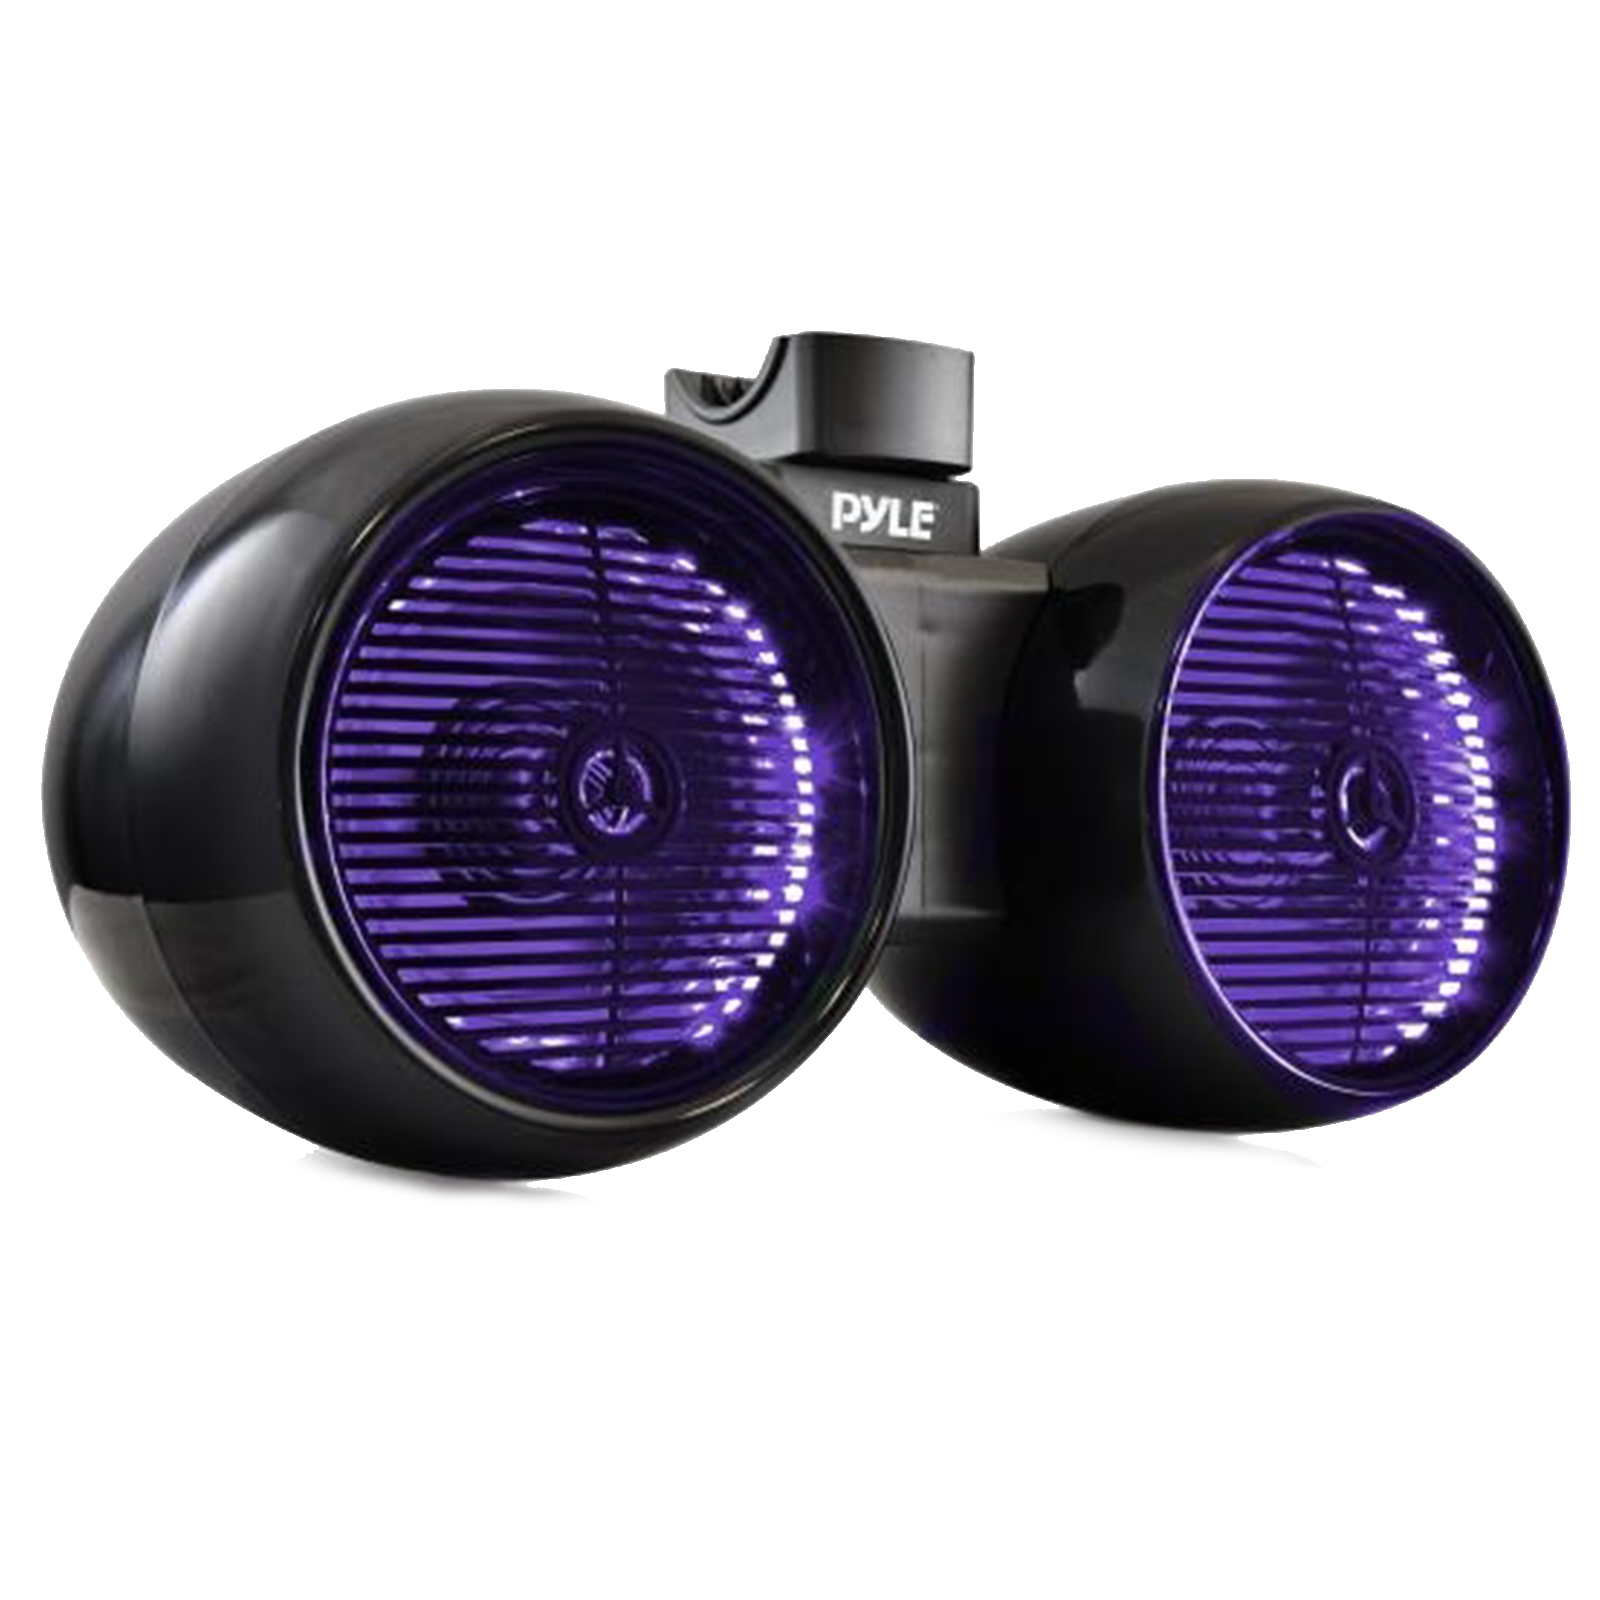 """Dual Marine Tower Speakers, Wakeboard Water Resistant Sound System, Built-in Programmable Multi-Color LED Lights, 600 Watt 8"""" Tower Speakers, Remote Control, Black"""